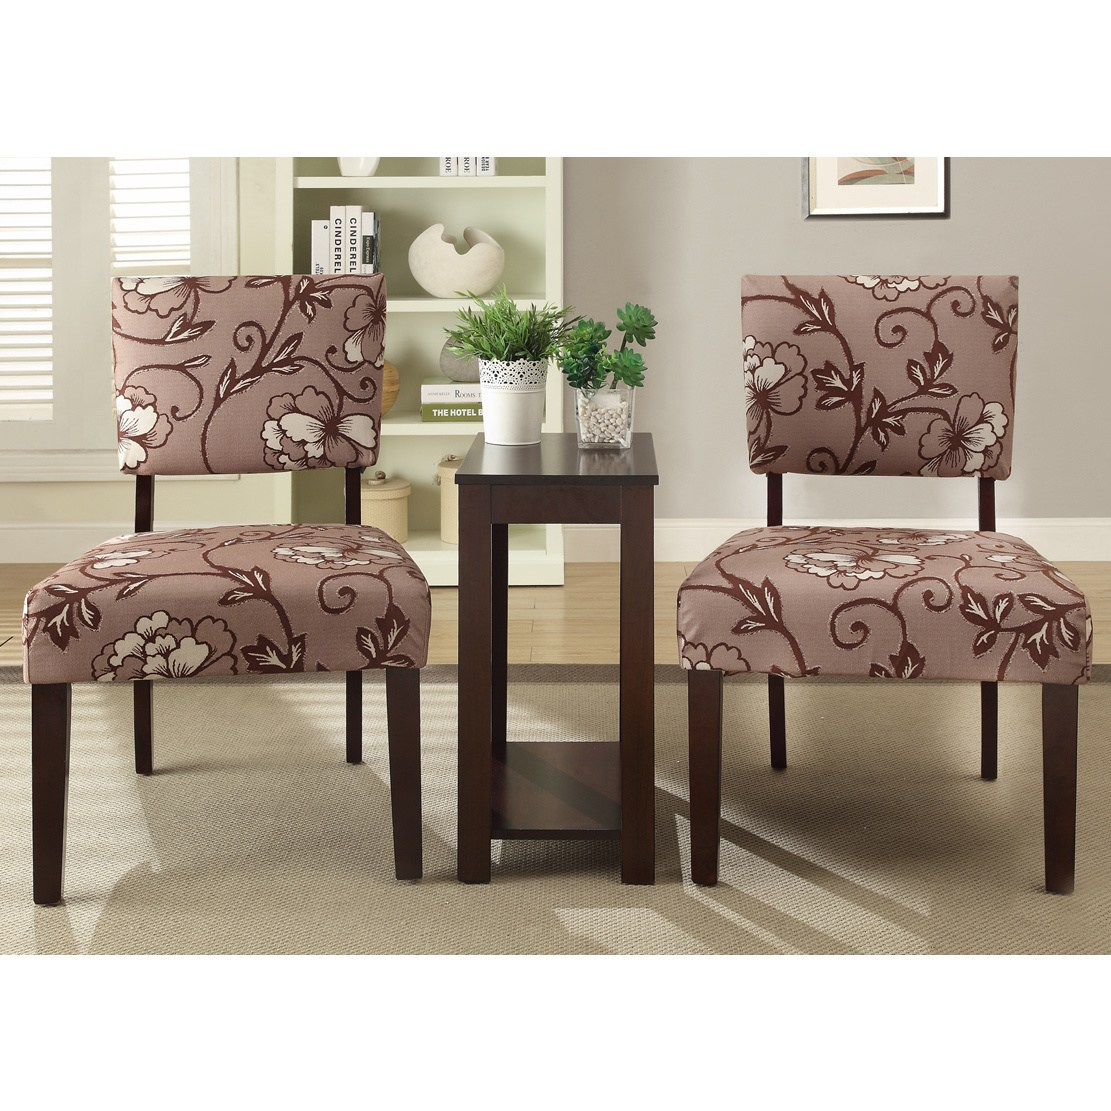 alexis vine piece printed accent chair and side table set free shipping today ashley furniture chaise target hexagon farmhouse nightstand wrought iron occasional tables industrial